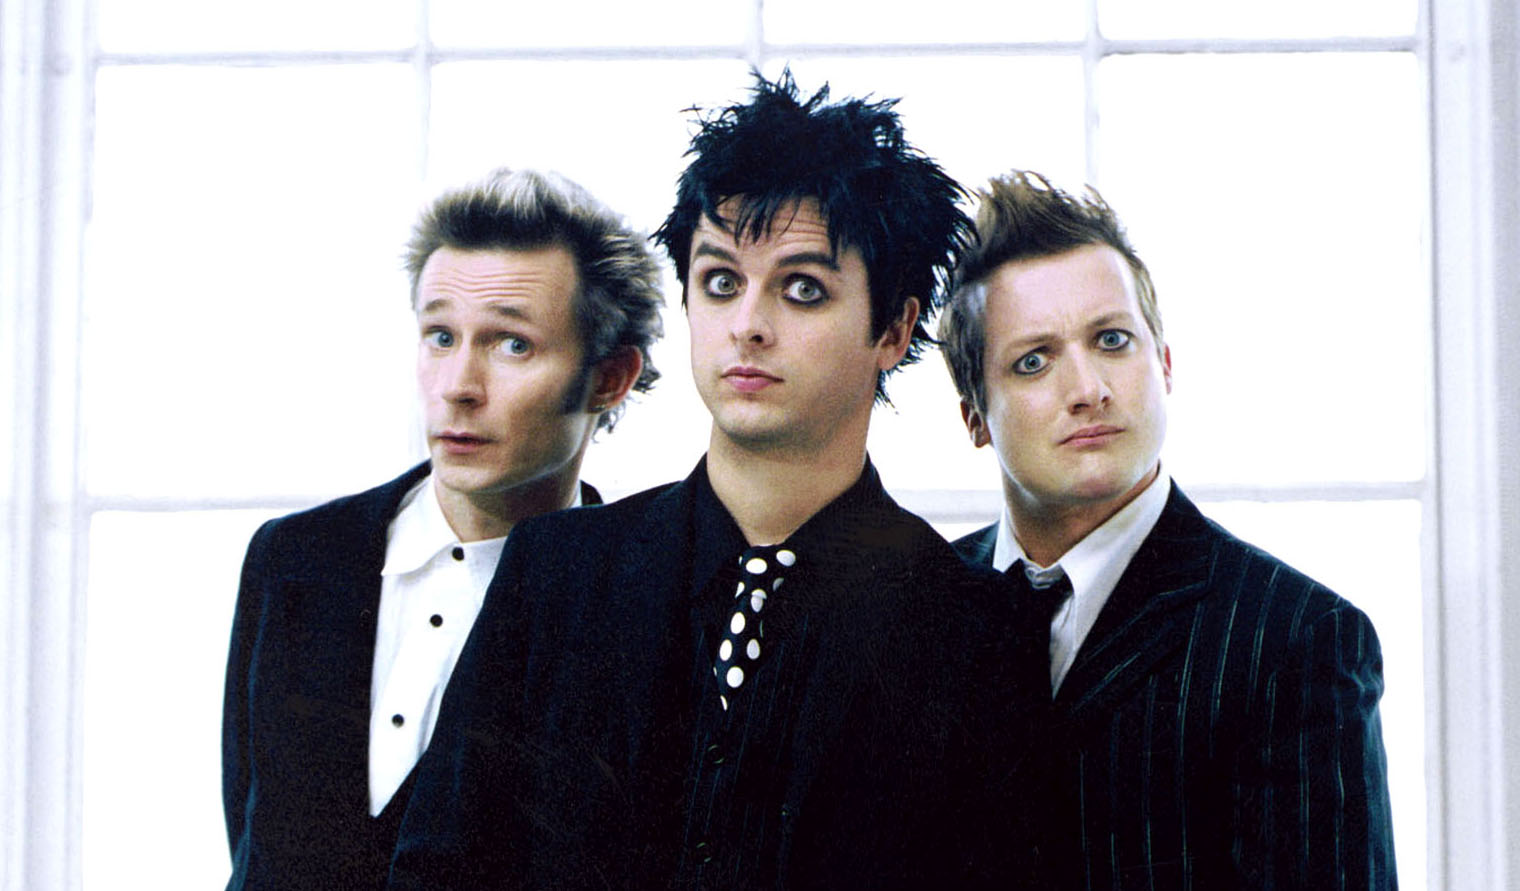 Green Day release the making of 'American Idiot' documentary: 'Heart Like A Hand Granade'